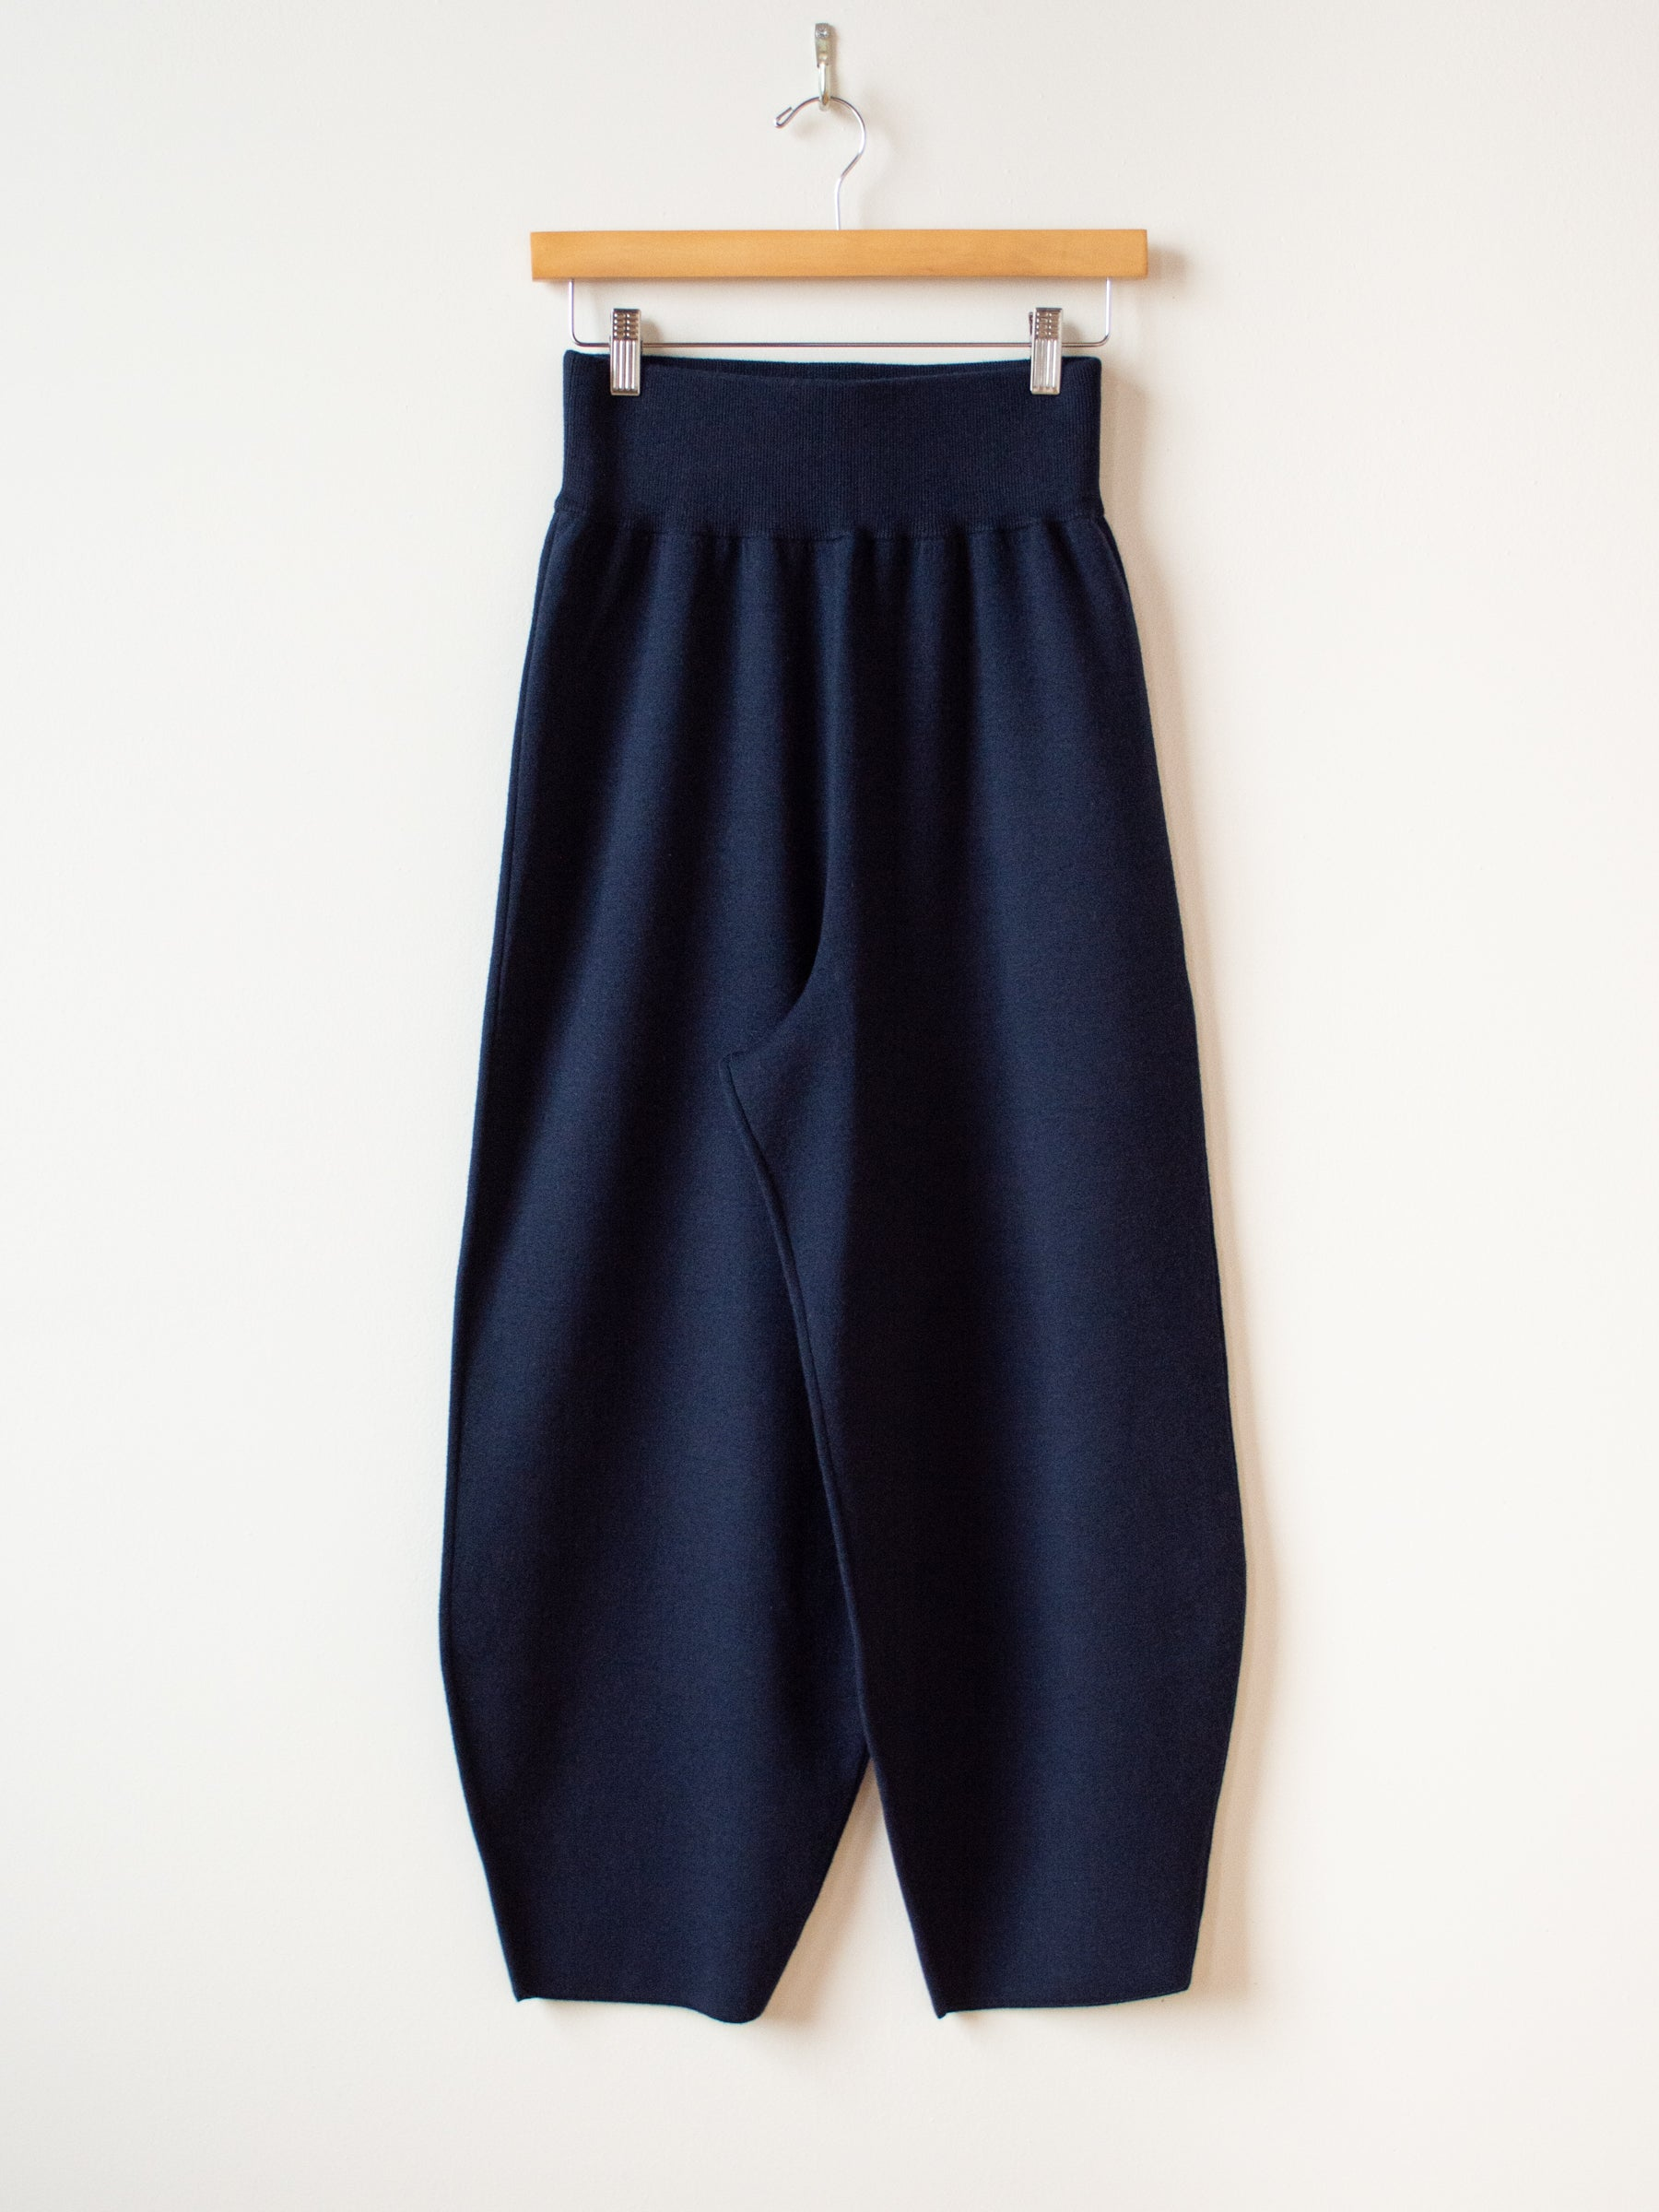 Moura Sculpted Wool Cashmere Trouser - Navy